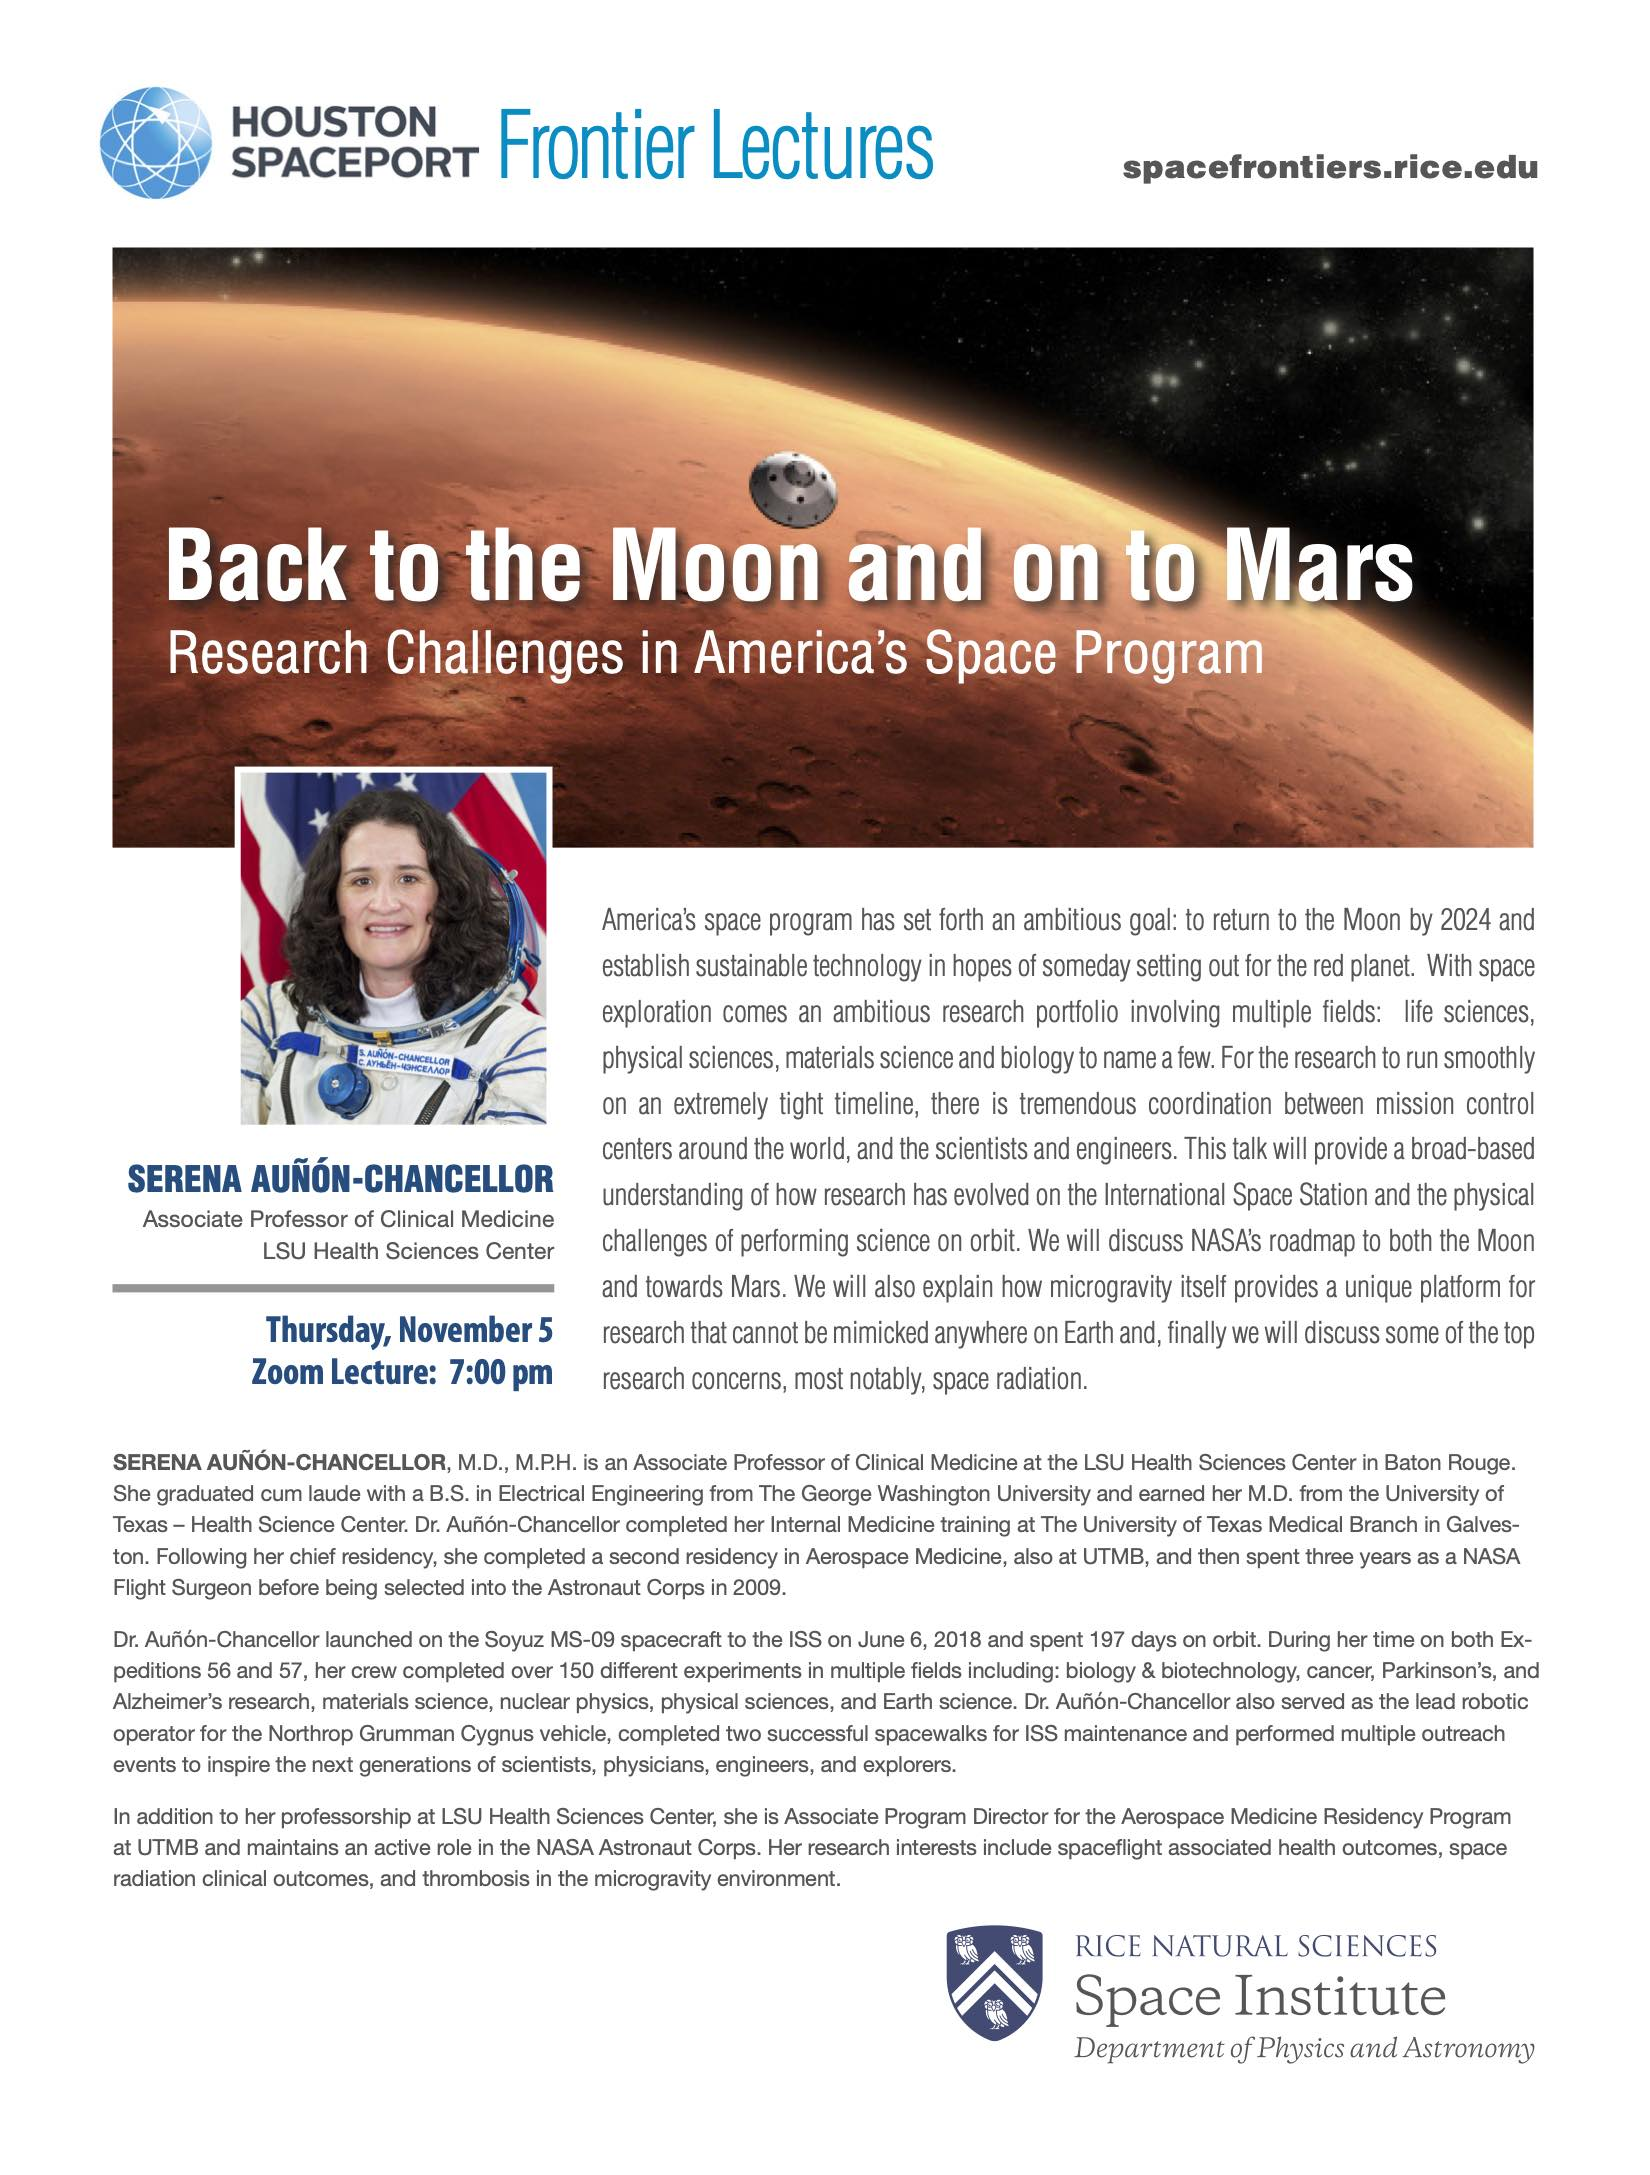 Poster of back to the moon and onto mars